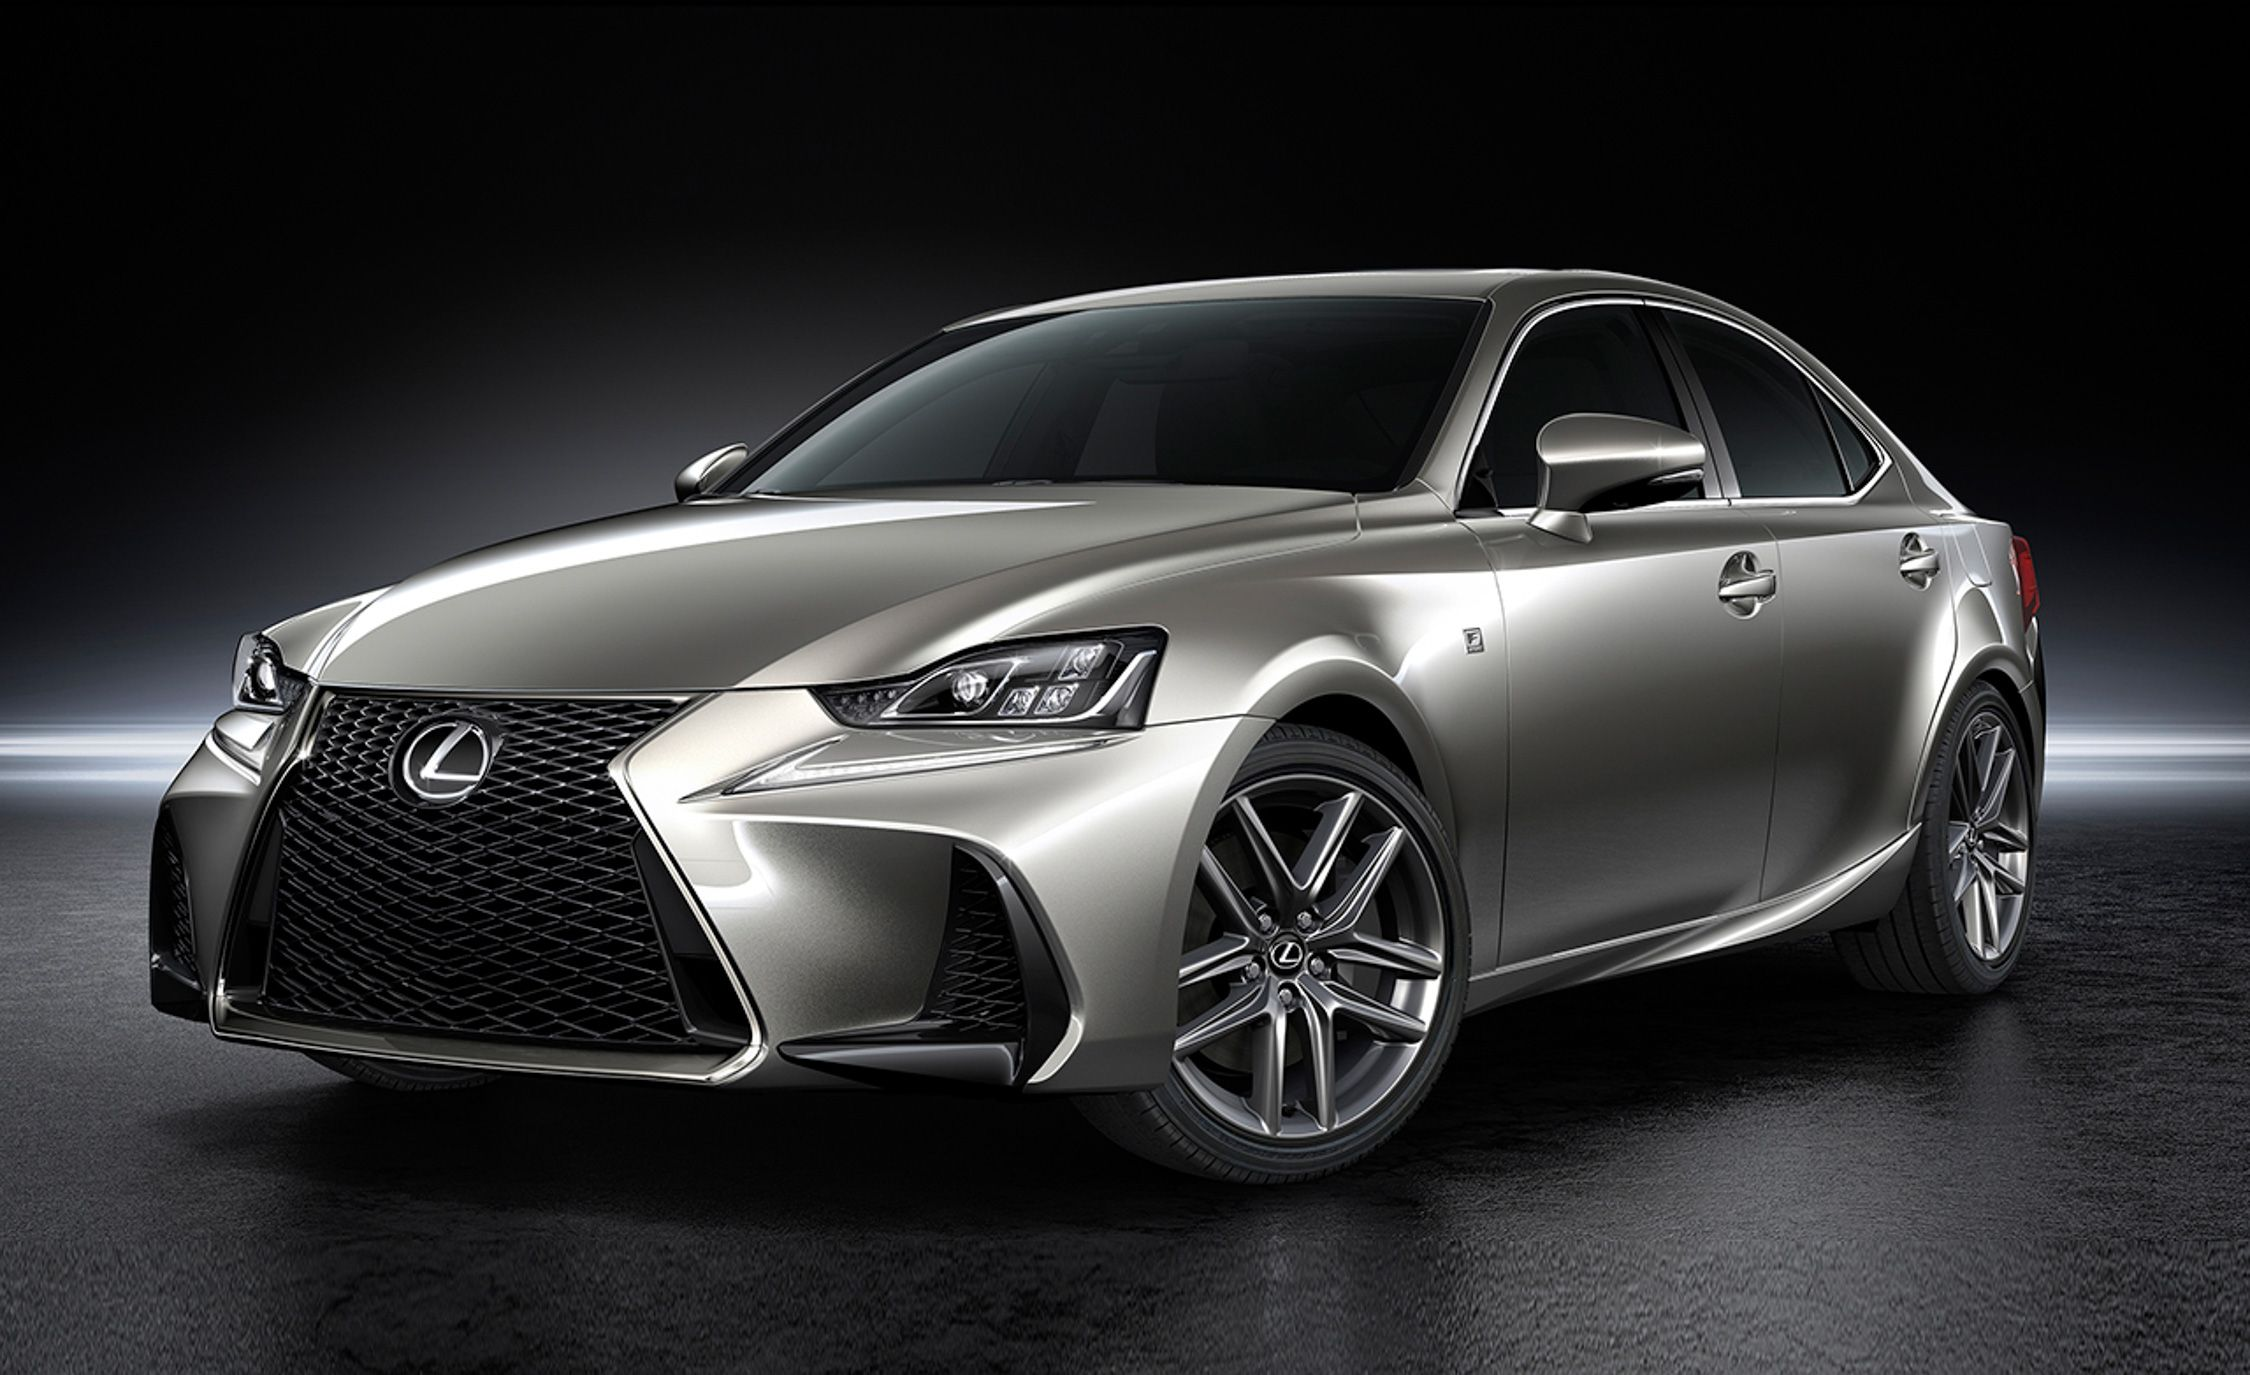 2017 Lexus Is Refreshed To Toe The Design Line